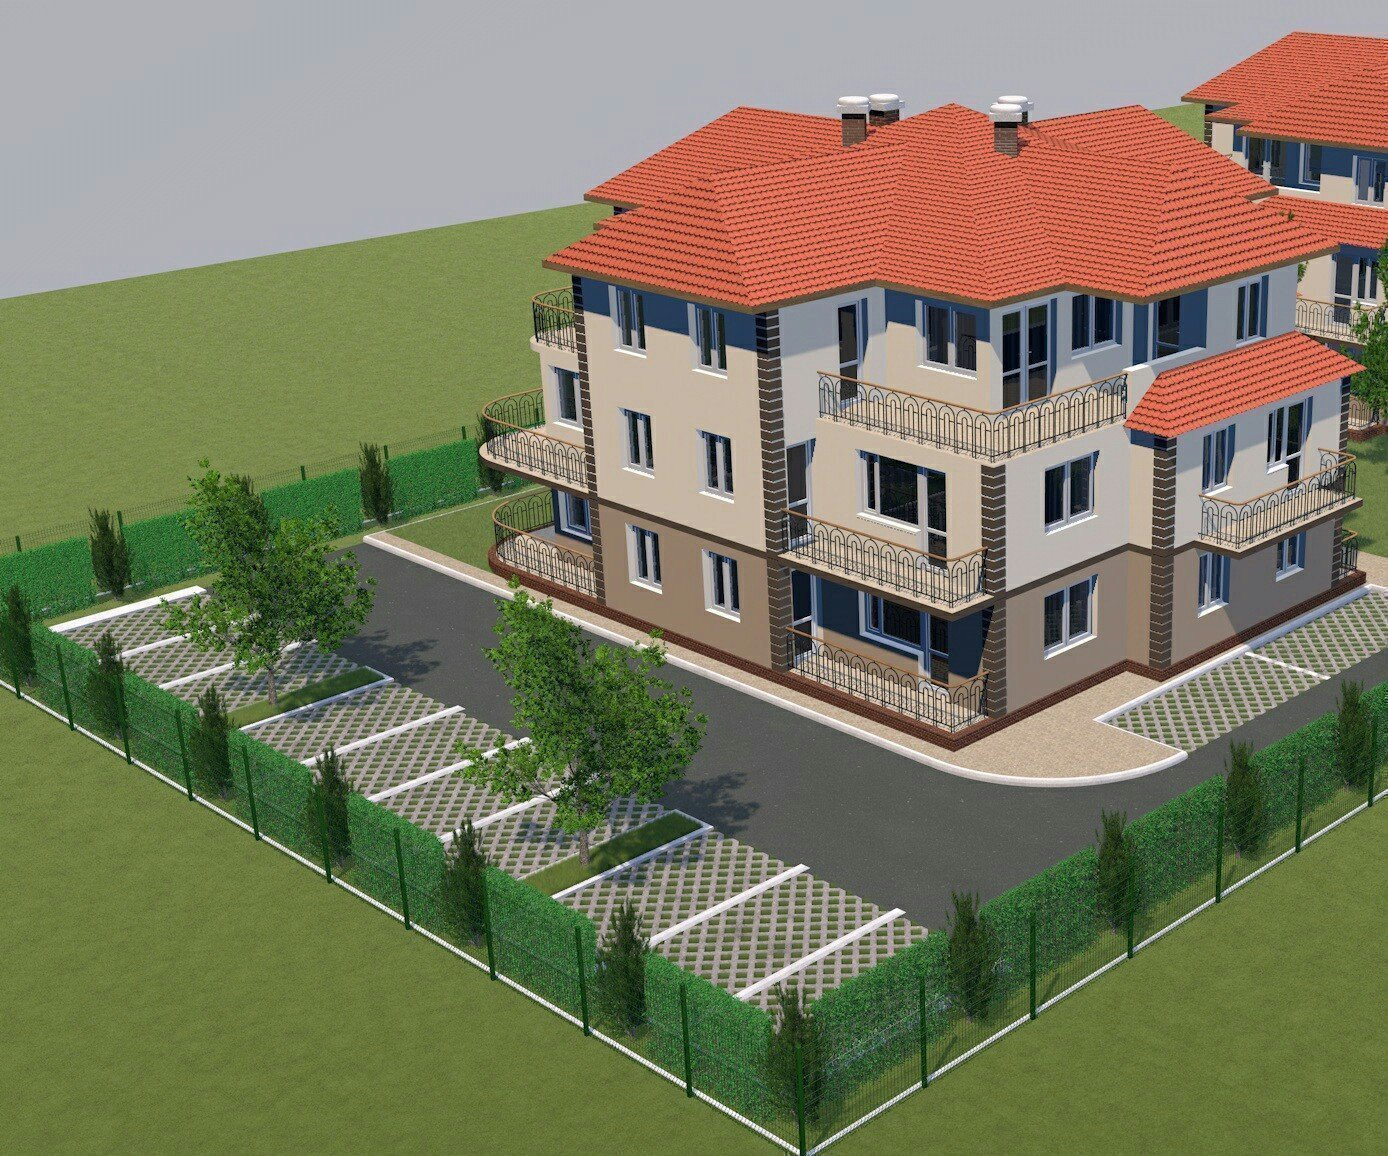 Sale property abroad Apartments in Hajduszoboszlo